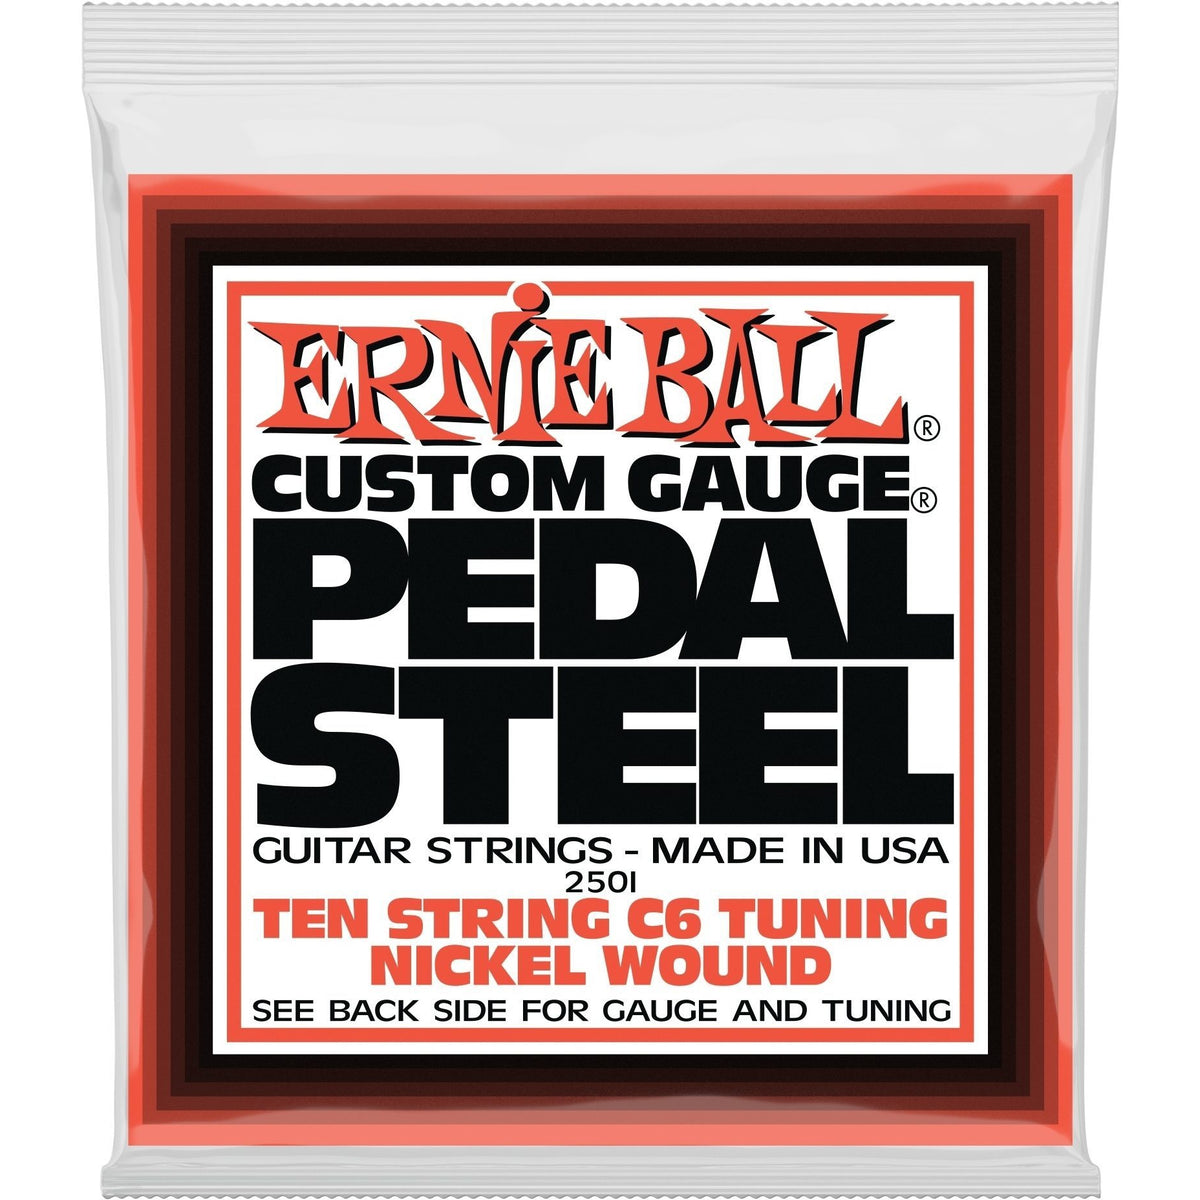 Ernie Ball Pedal Steel Strings, C6 Tuning